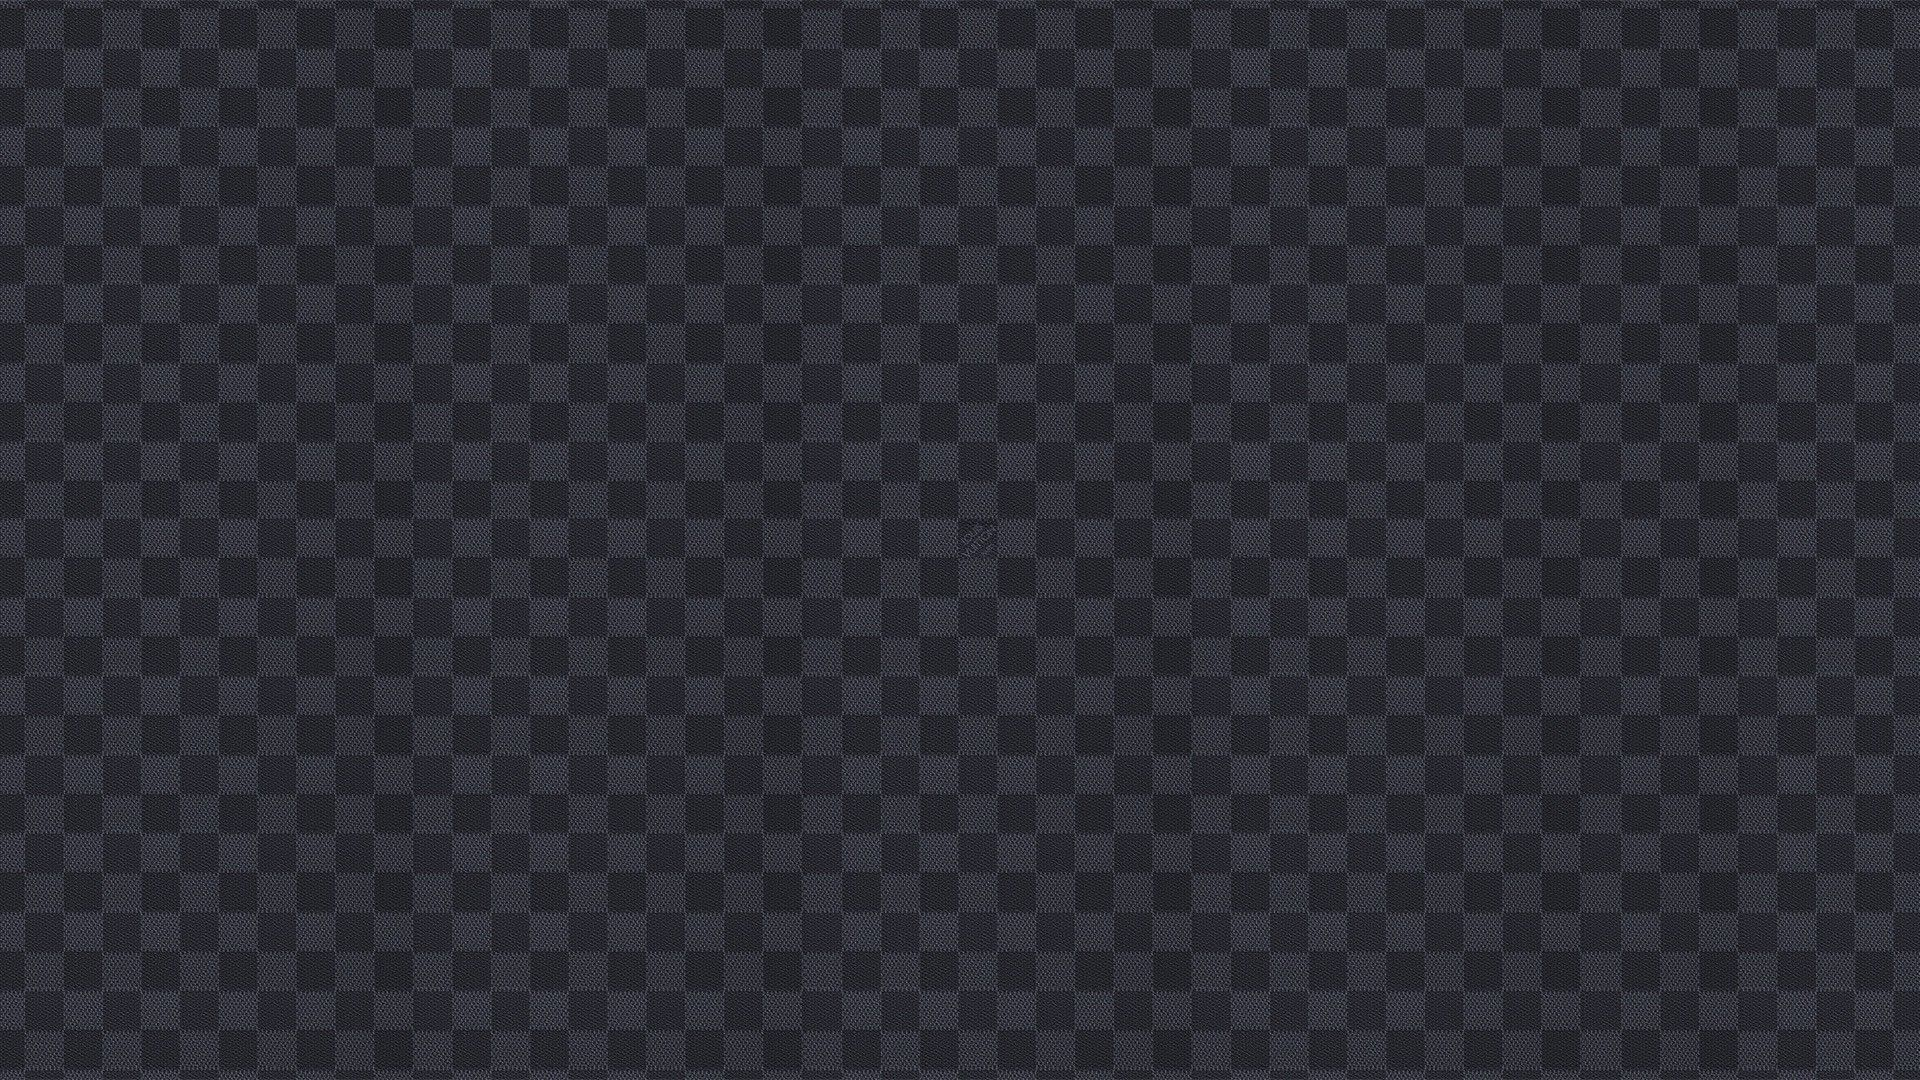 Simple Wallpaper Macbook Louis Vuitton - 3ab89fe70db8b107ee5f6e809de163b4  Pictures_553675.jpg